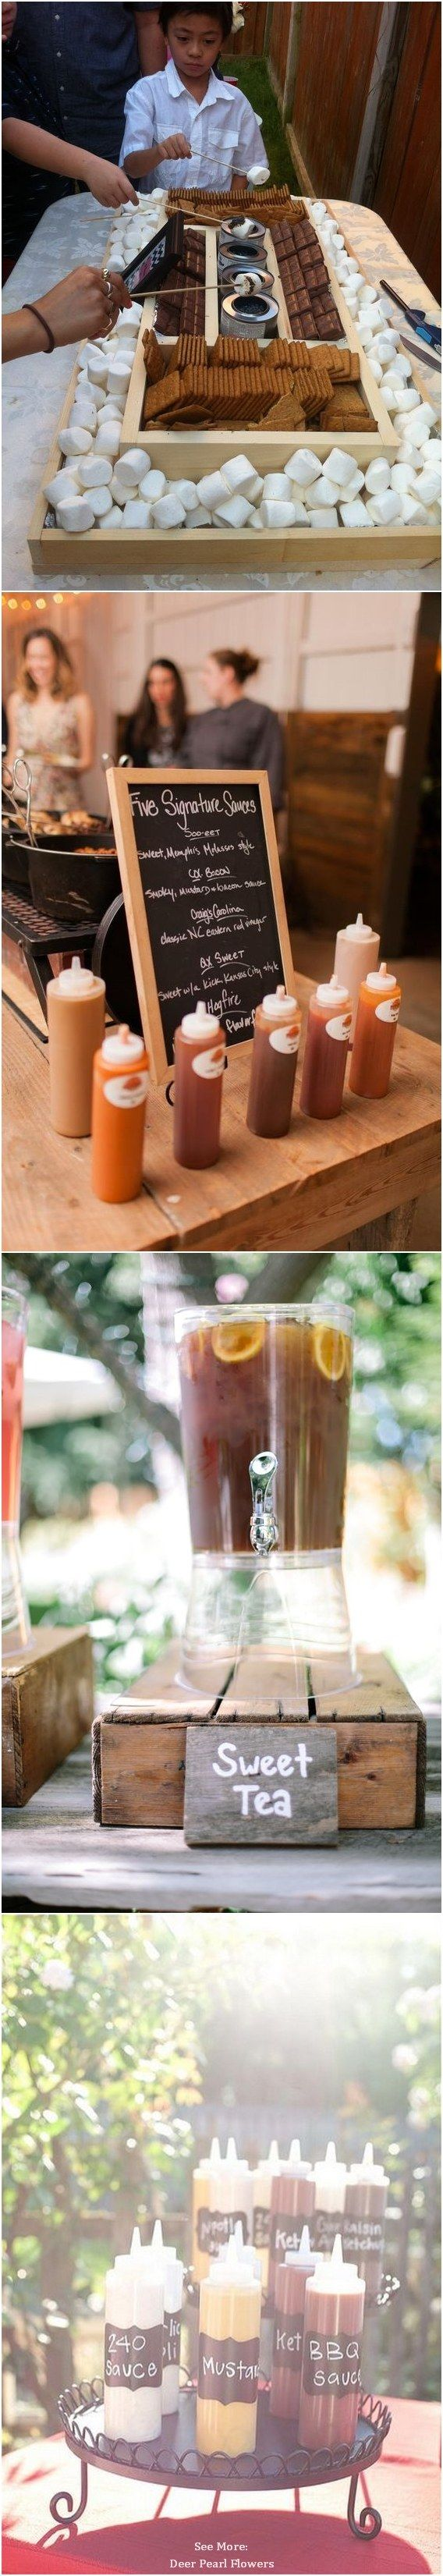 best 25 barbeque wedding ideas on pinterest country wedding